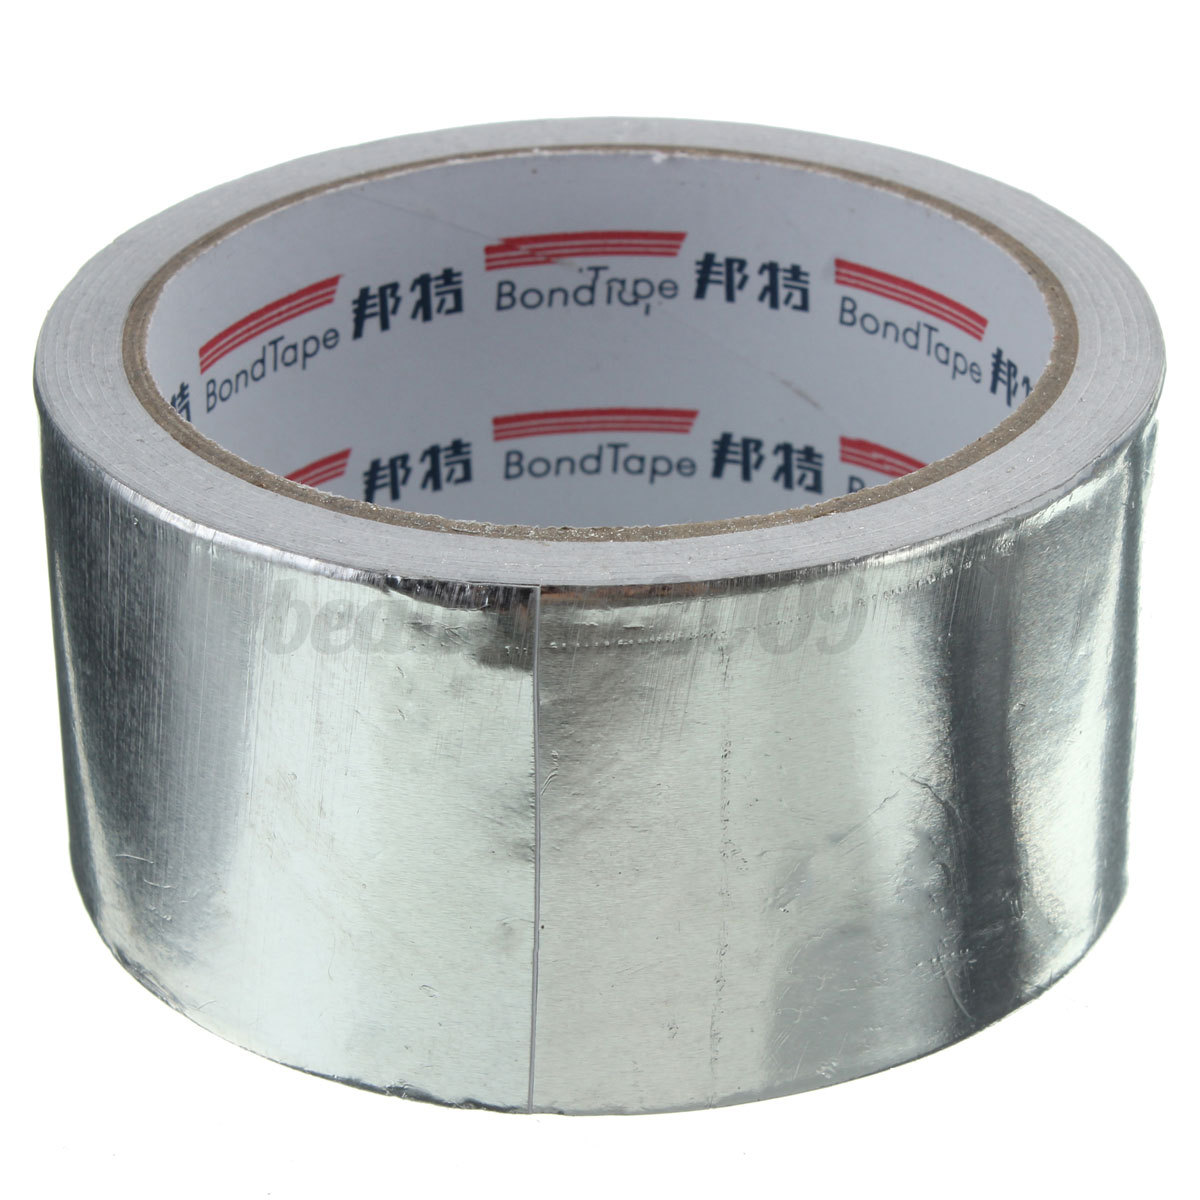 #7A3B43 50mm X 17m Aluminium Foil Adhesive Sealing Tape Heating  Most Effective 4405 Hvac Duct Sealant pictures with 1200x1200 px on helpvideos.info - Air Conditioners, Air Coolers and more